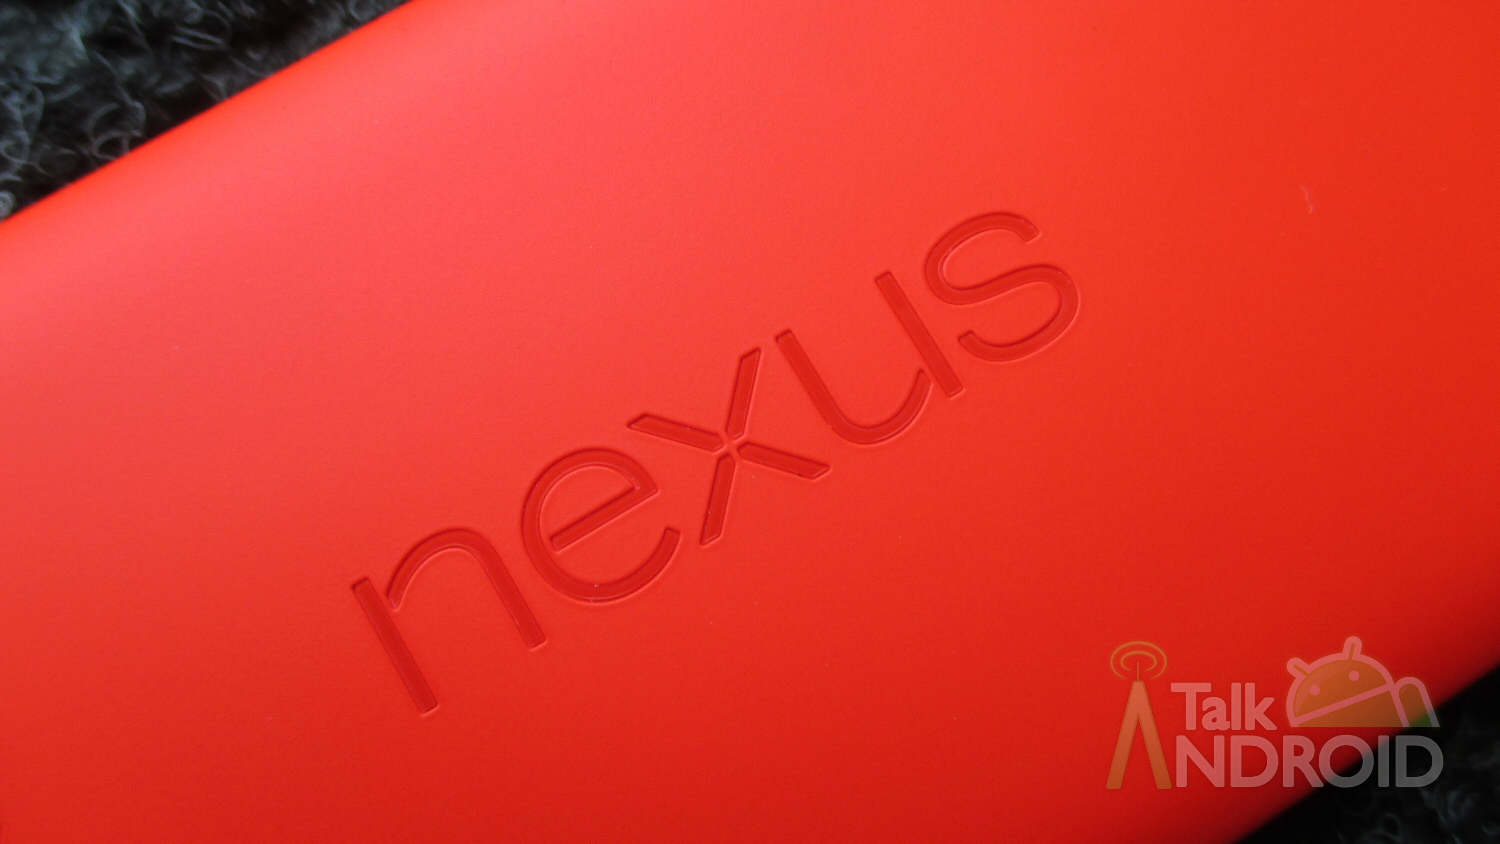 Expect Nexus devices to receive monthly security updates from now on